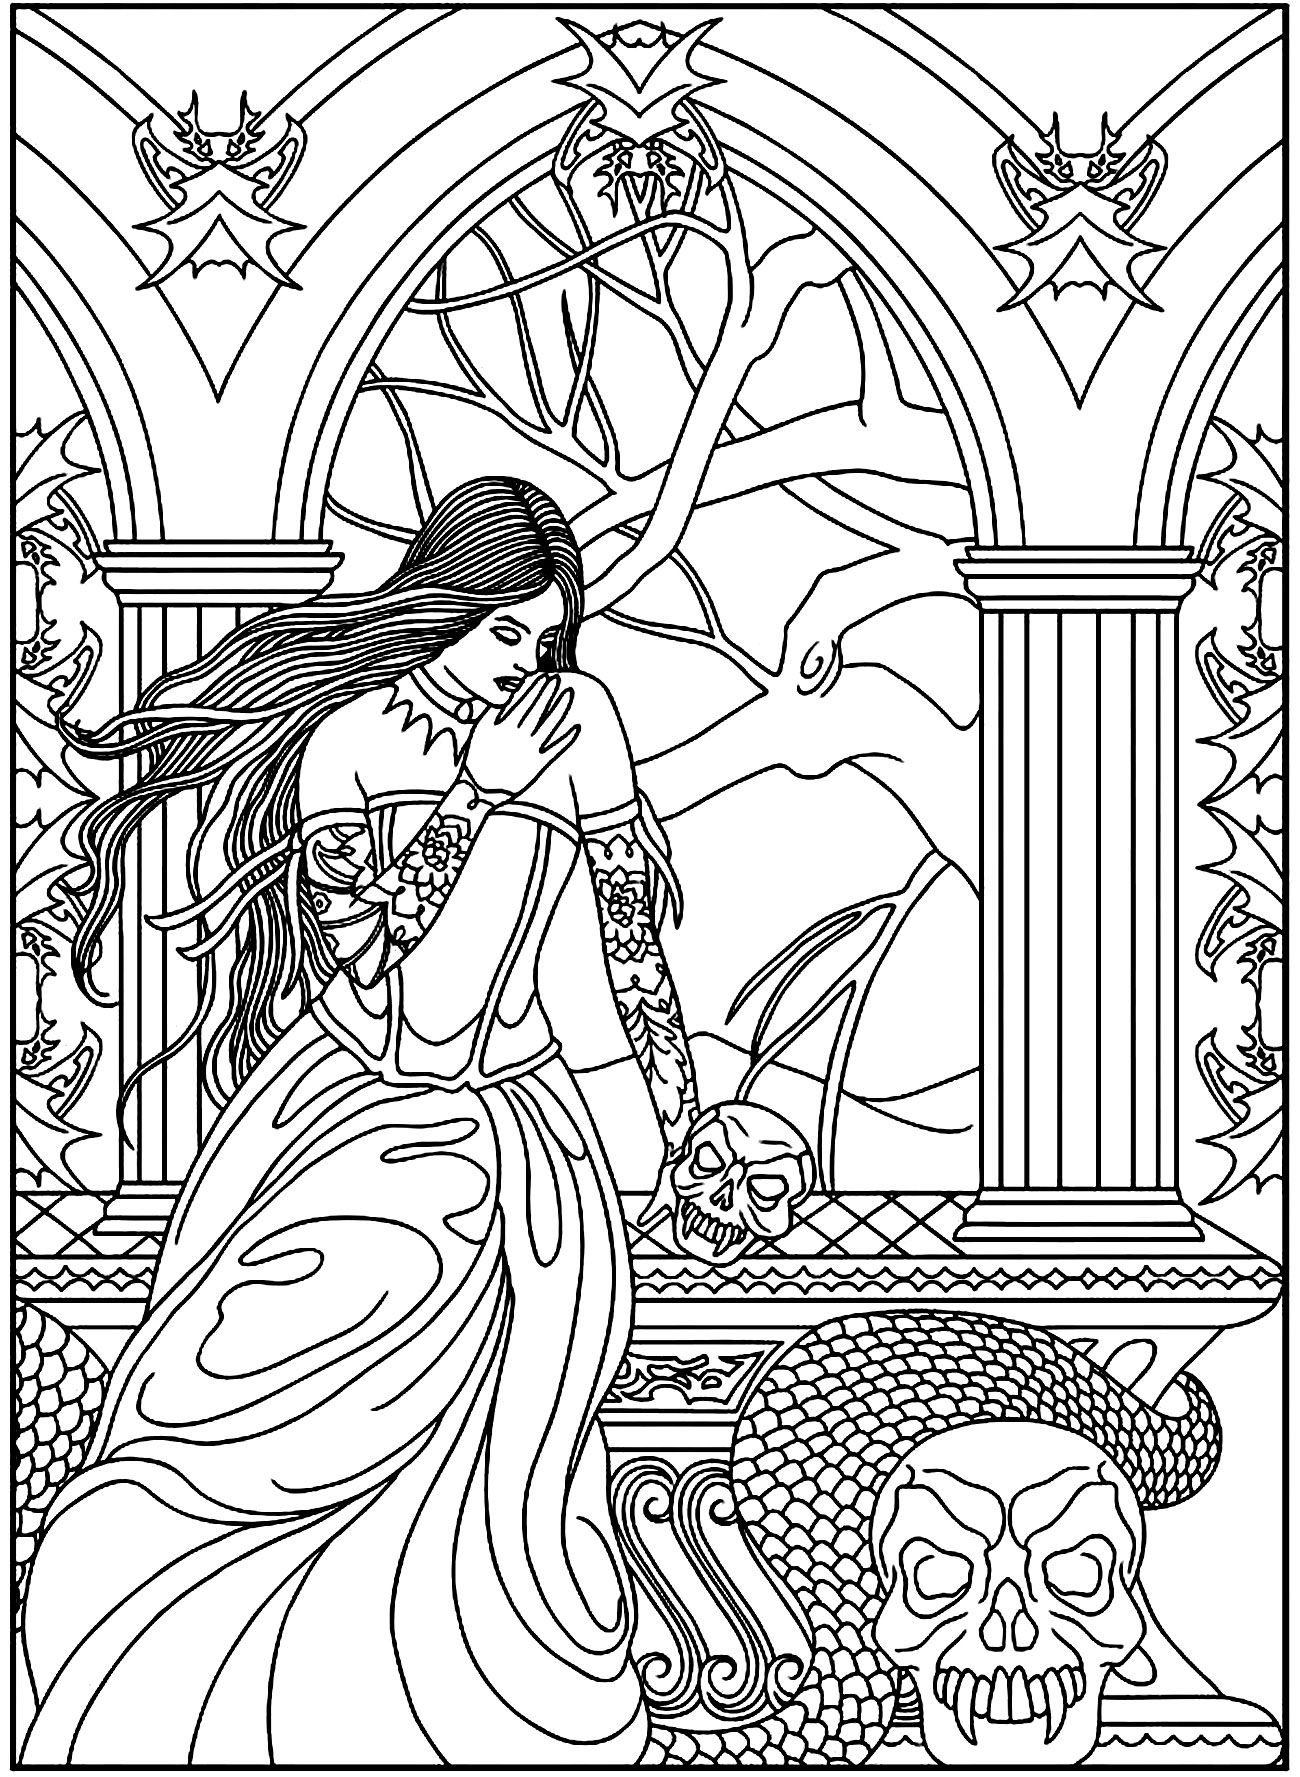 to print this free coloring page coloring adult fantasy woman skulls